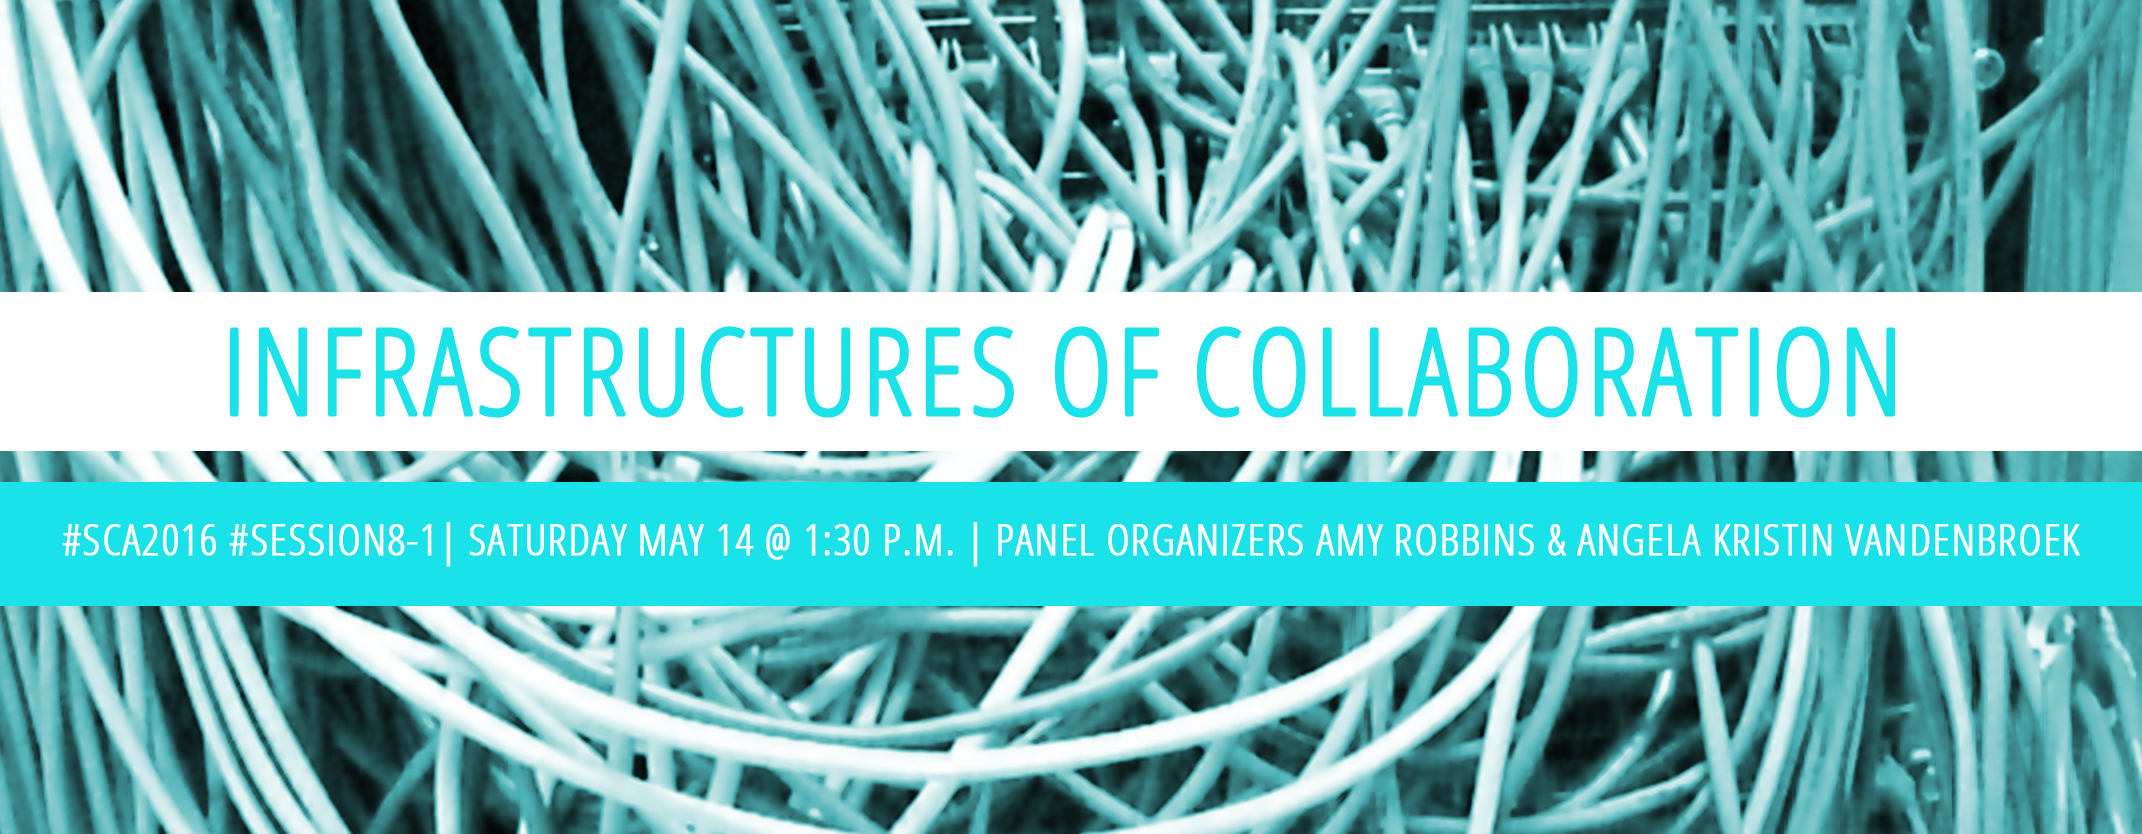 Banner for Infrastructures of Collaboration